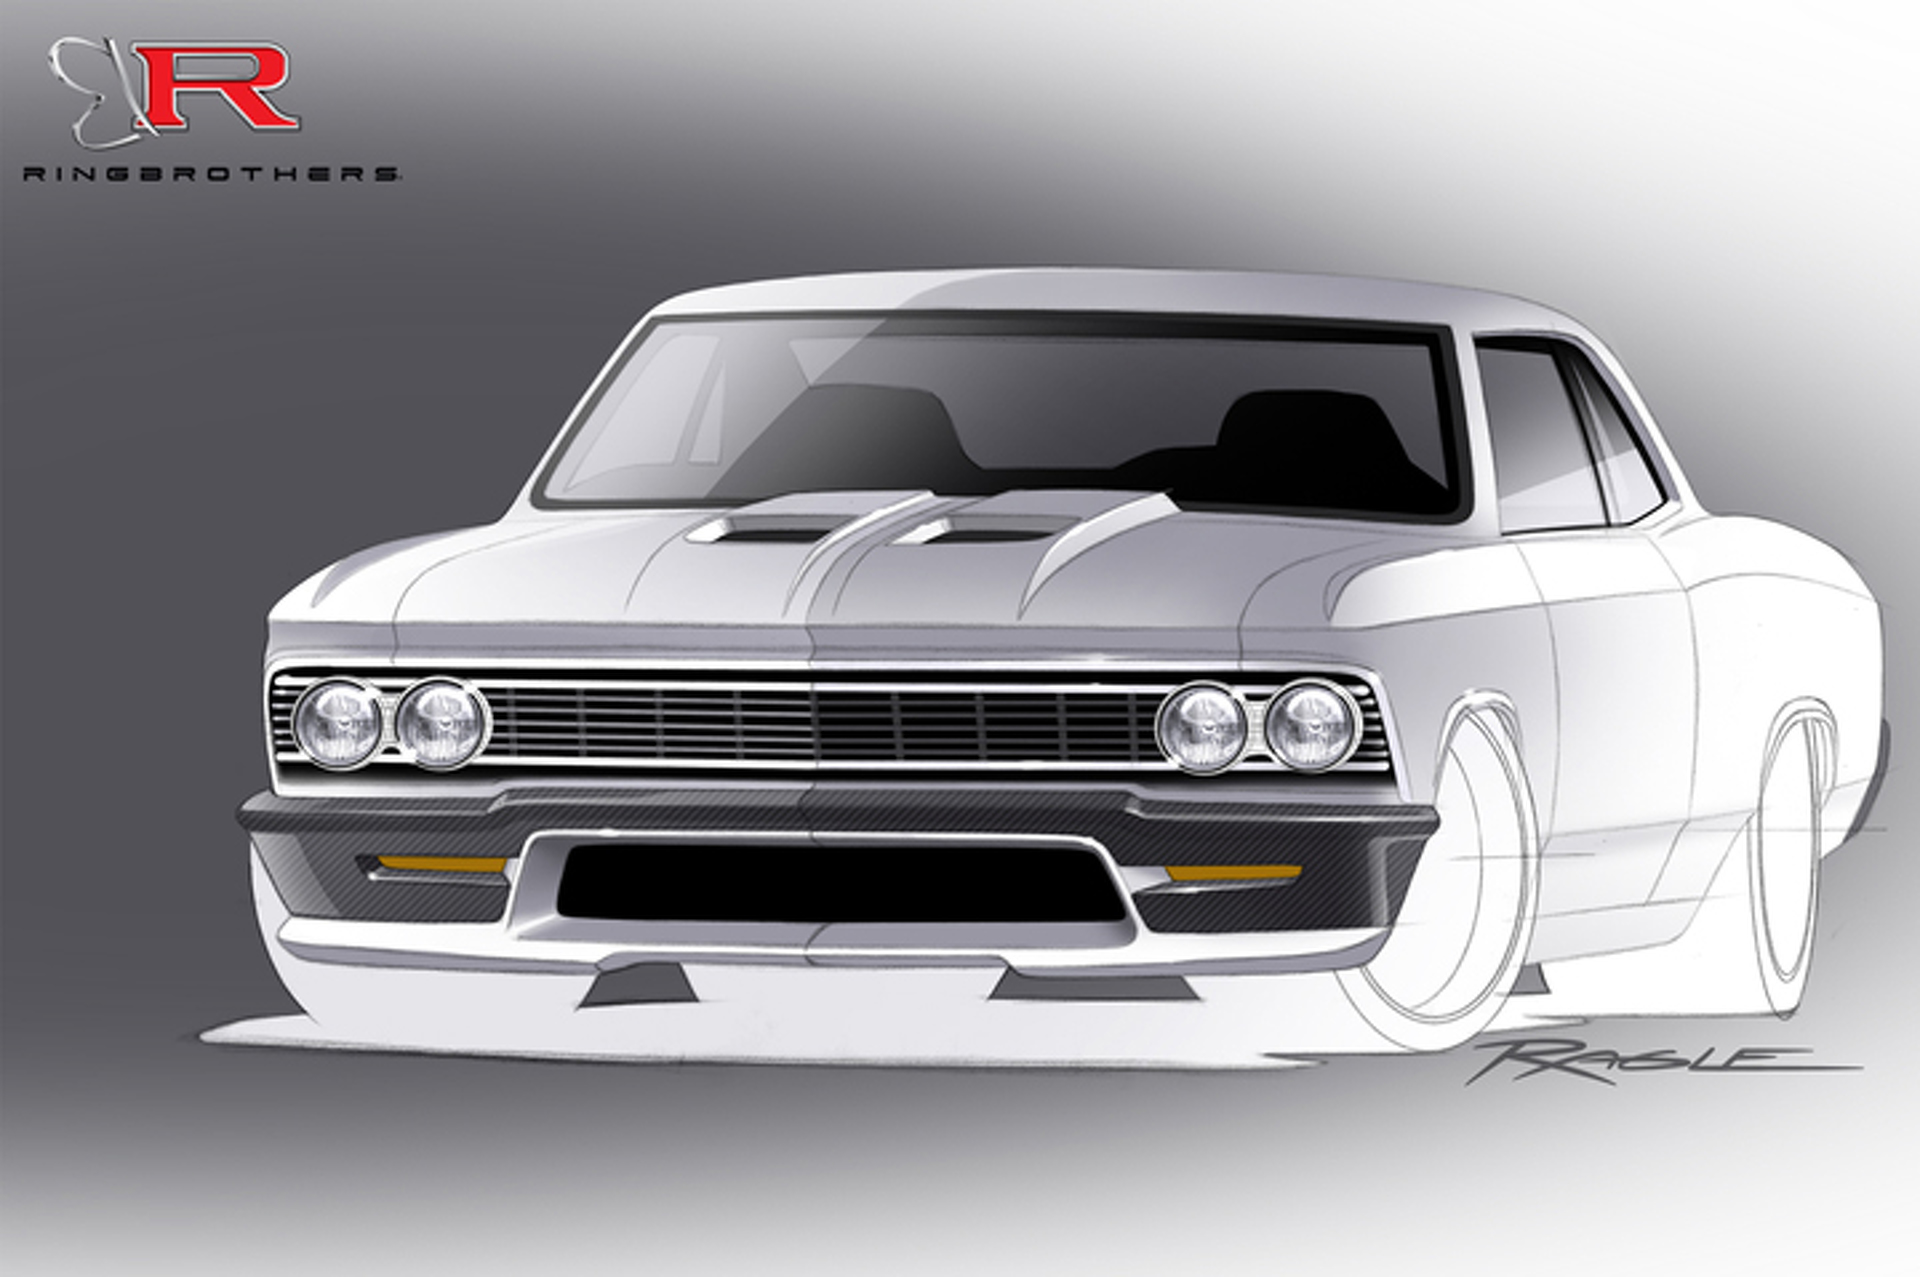 Meet 'Recoil' – A Supercharged '66 Chevrolet Chevelle